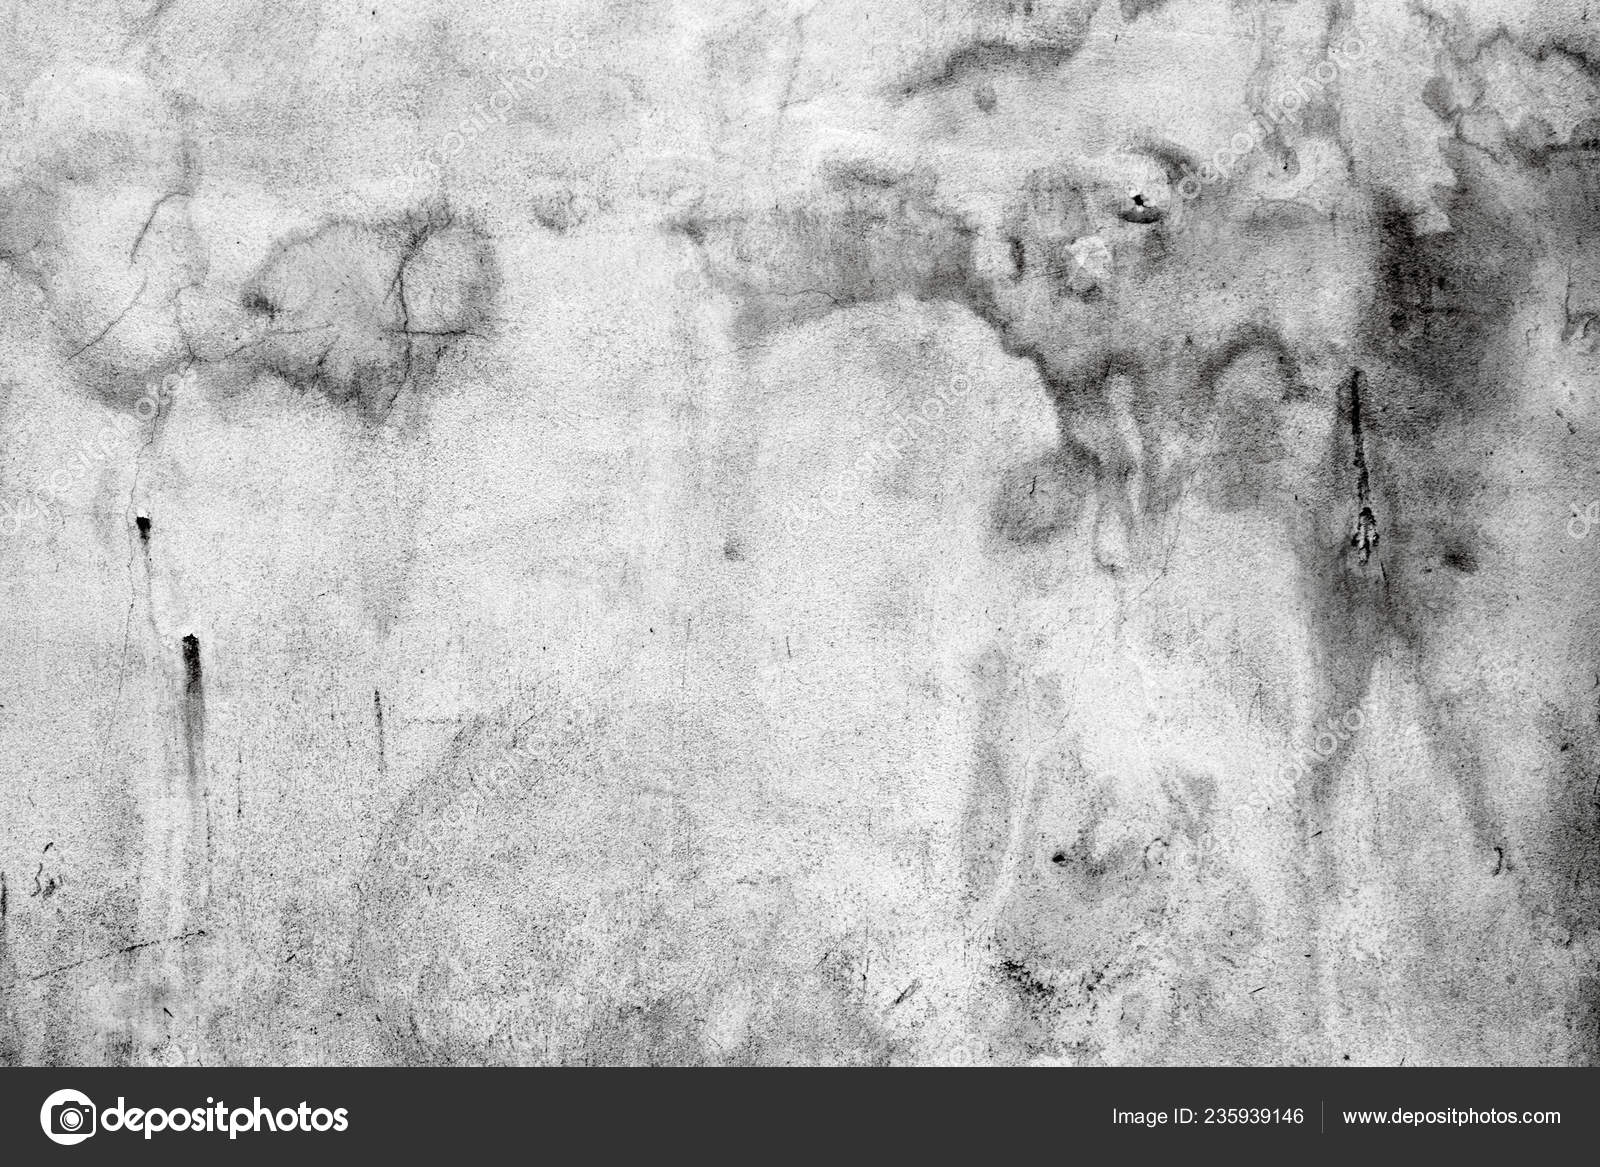 Closeup Rough Textured Grunge Concrete Wall Background